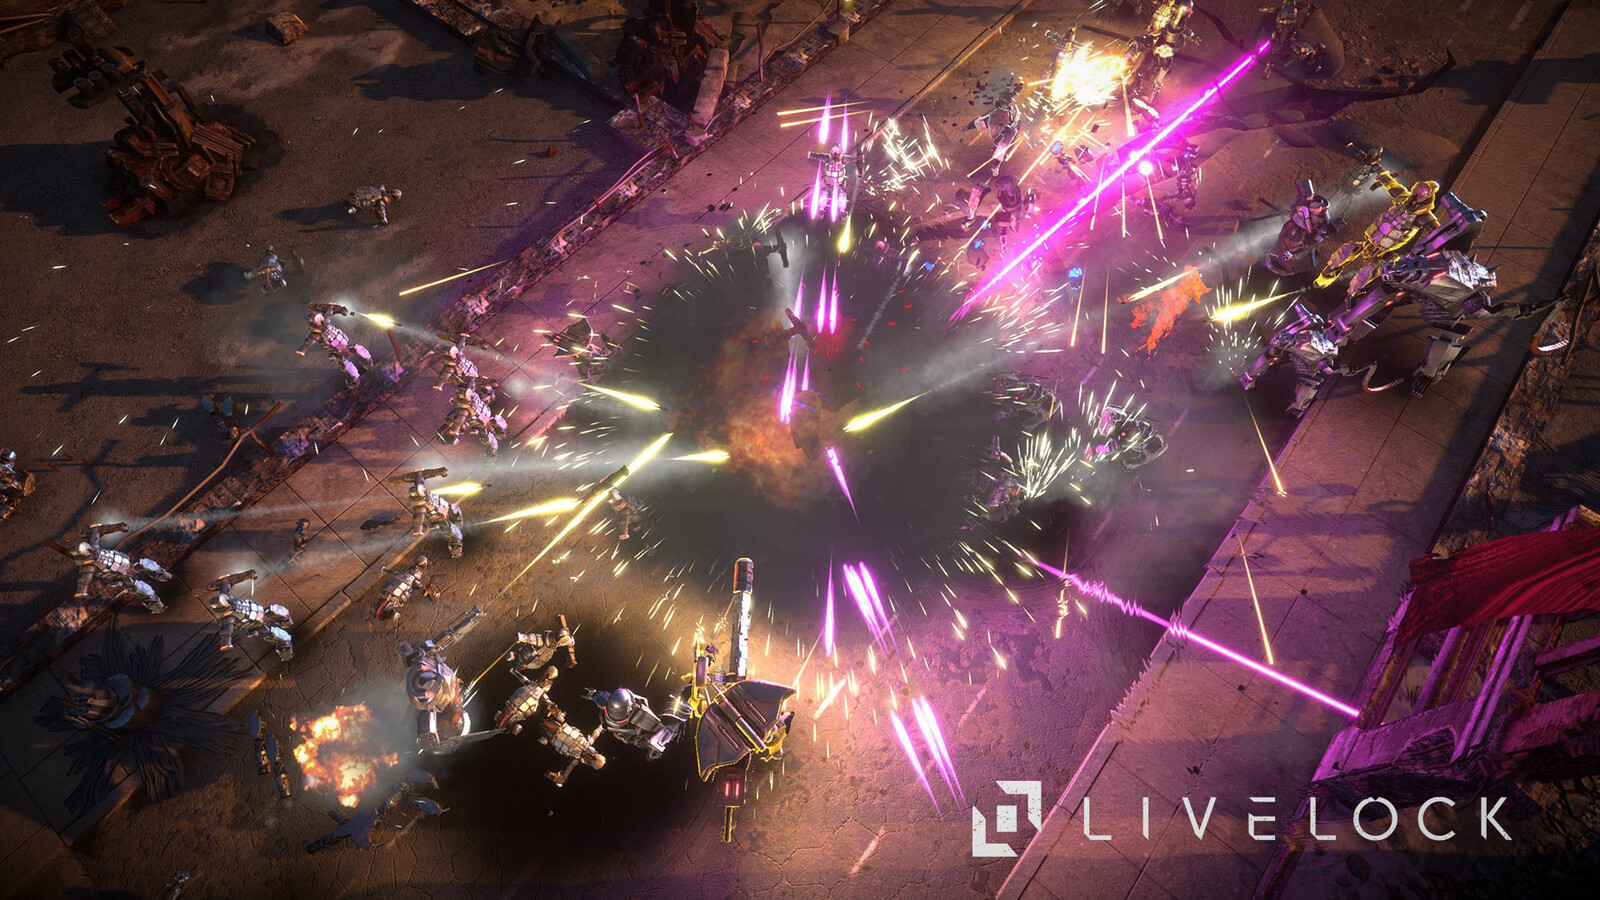 Livelock uses full dynamic lighting. The statics assets were using the alpha vertex for pre-baking the ambient occlusion.